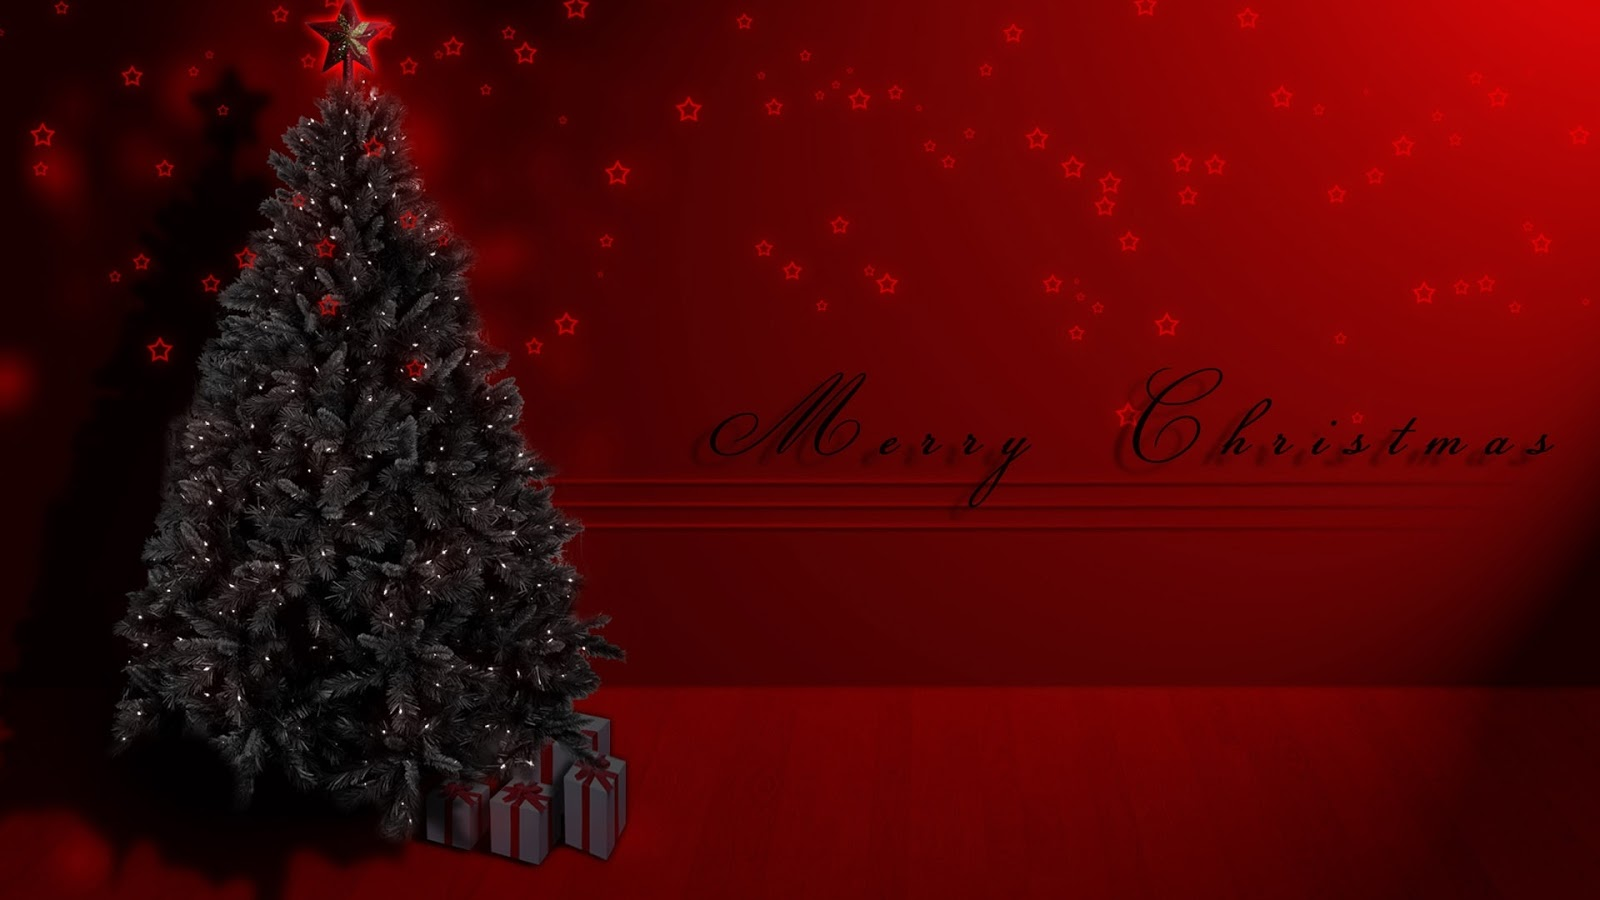 Free High-Definition Wallpapers: HD Christmas Wallpaper